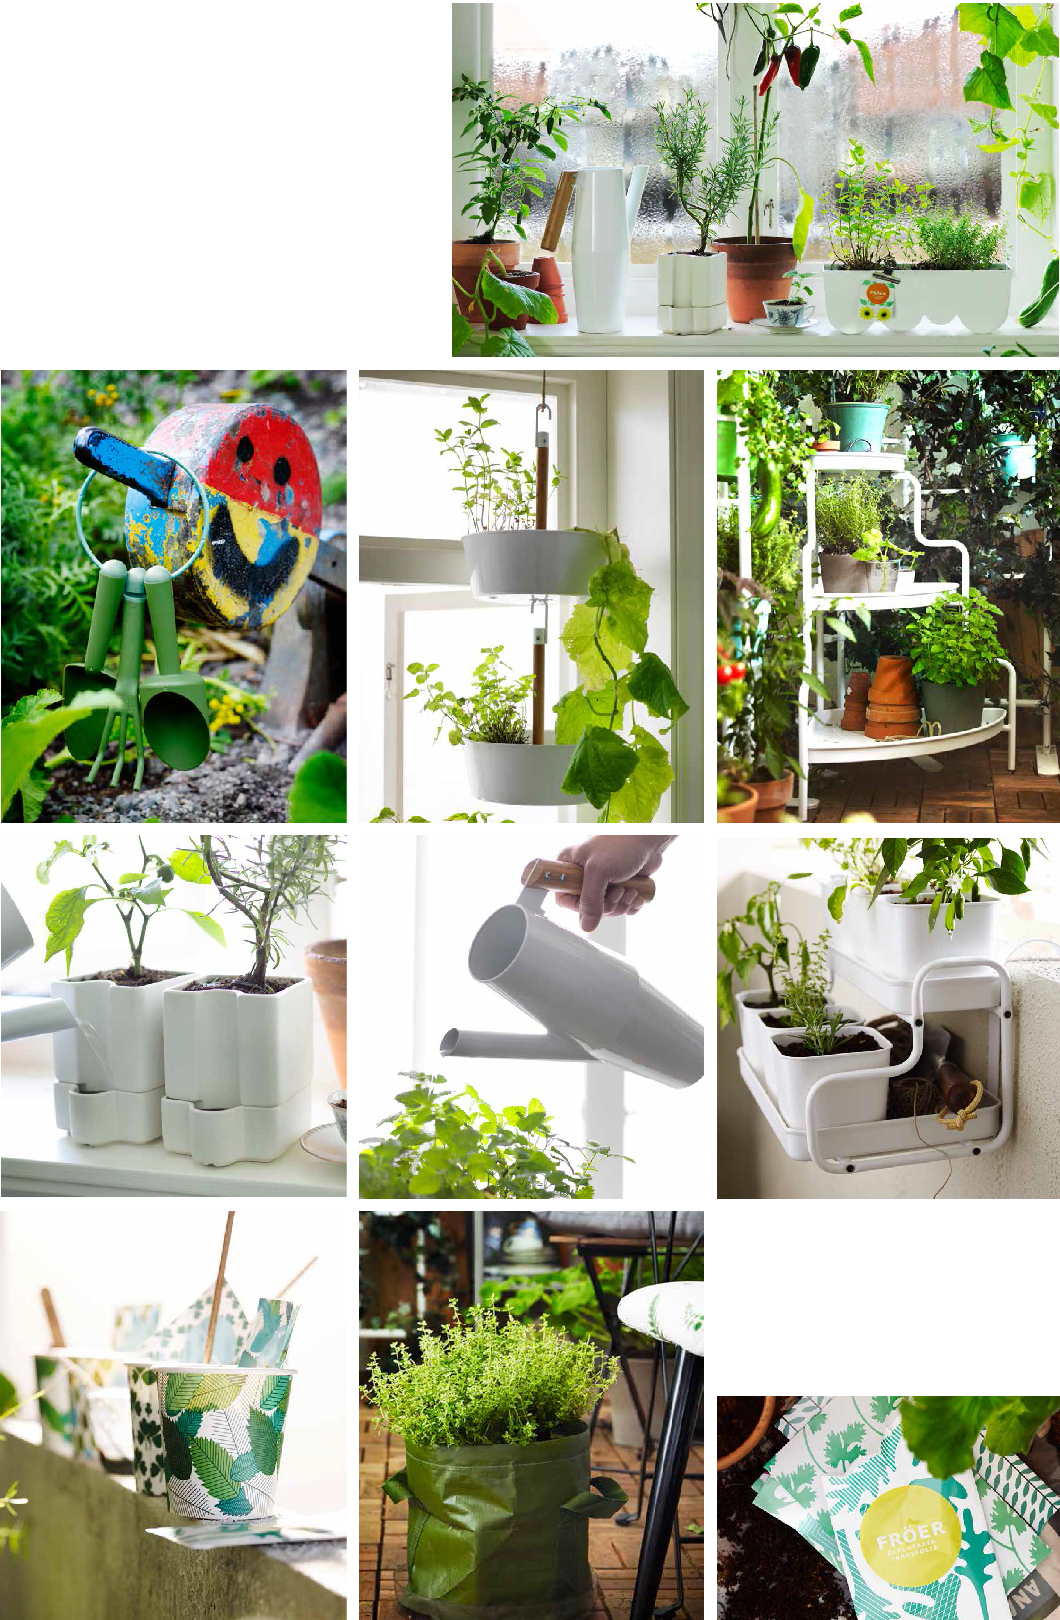 Ikea estate 2015 catalogo esterni gazebo ombrelloni for Ikea catalogo 2015 italia